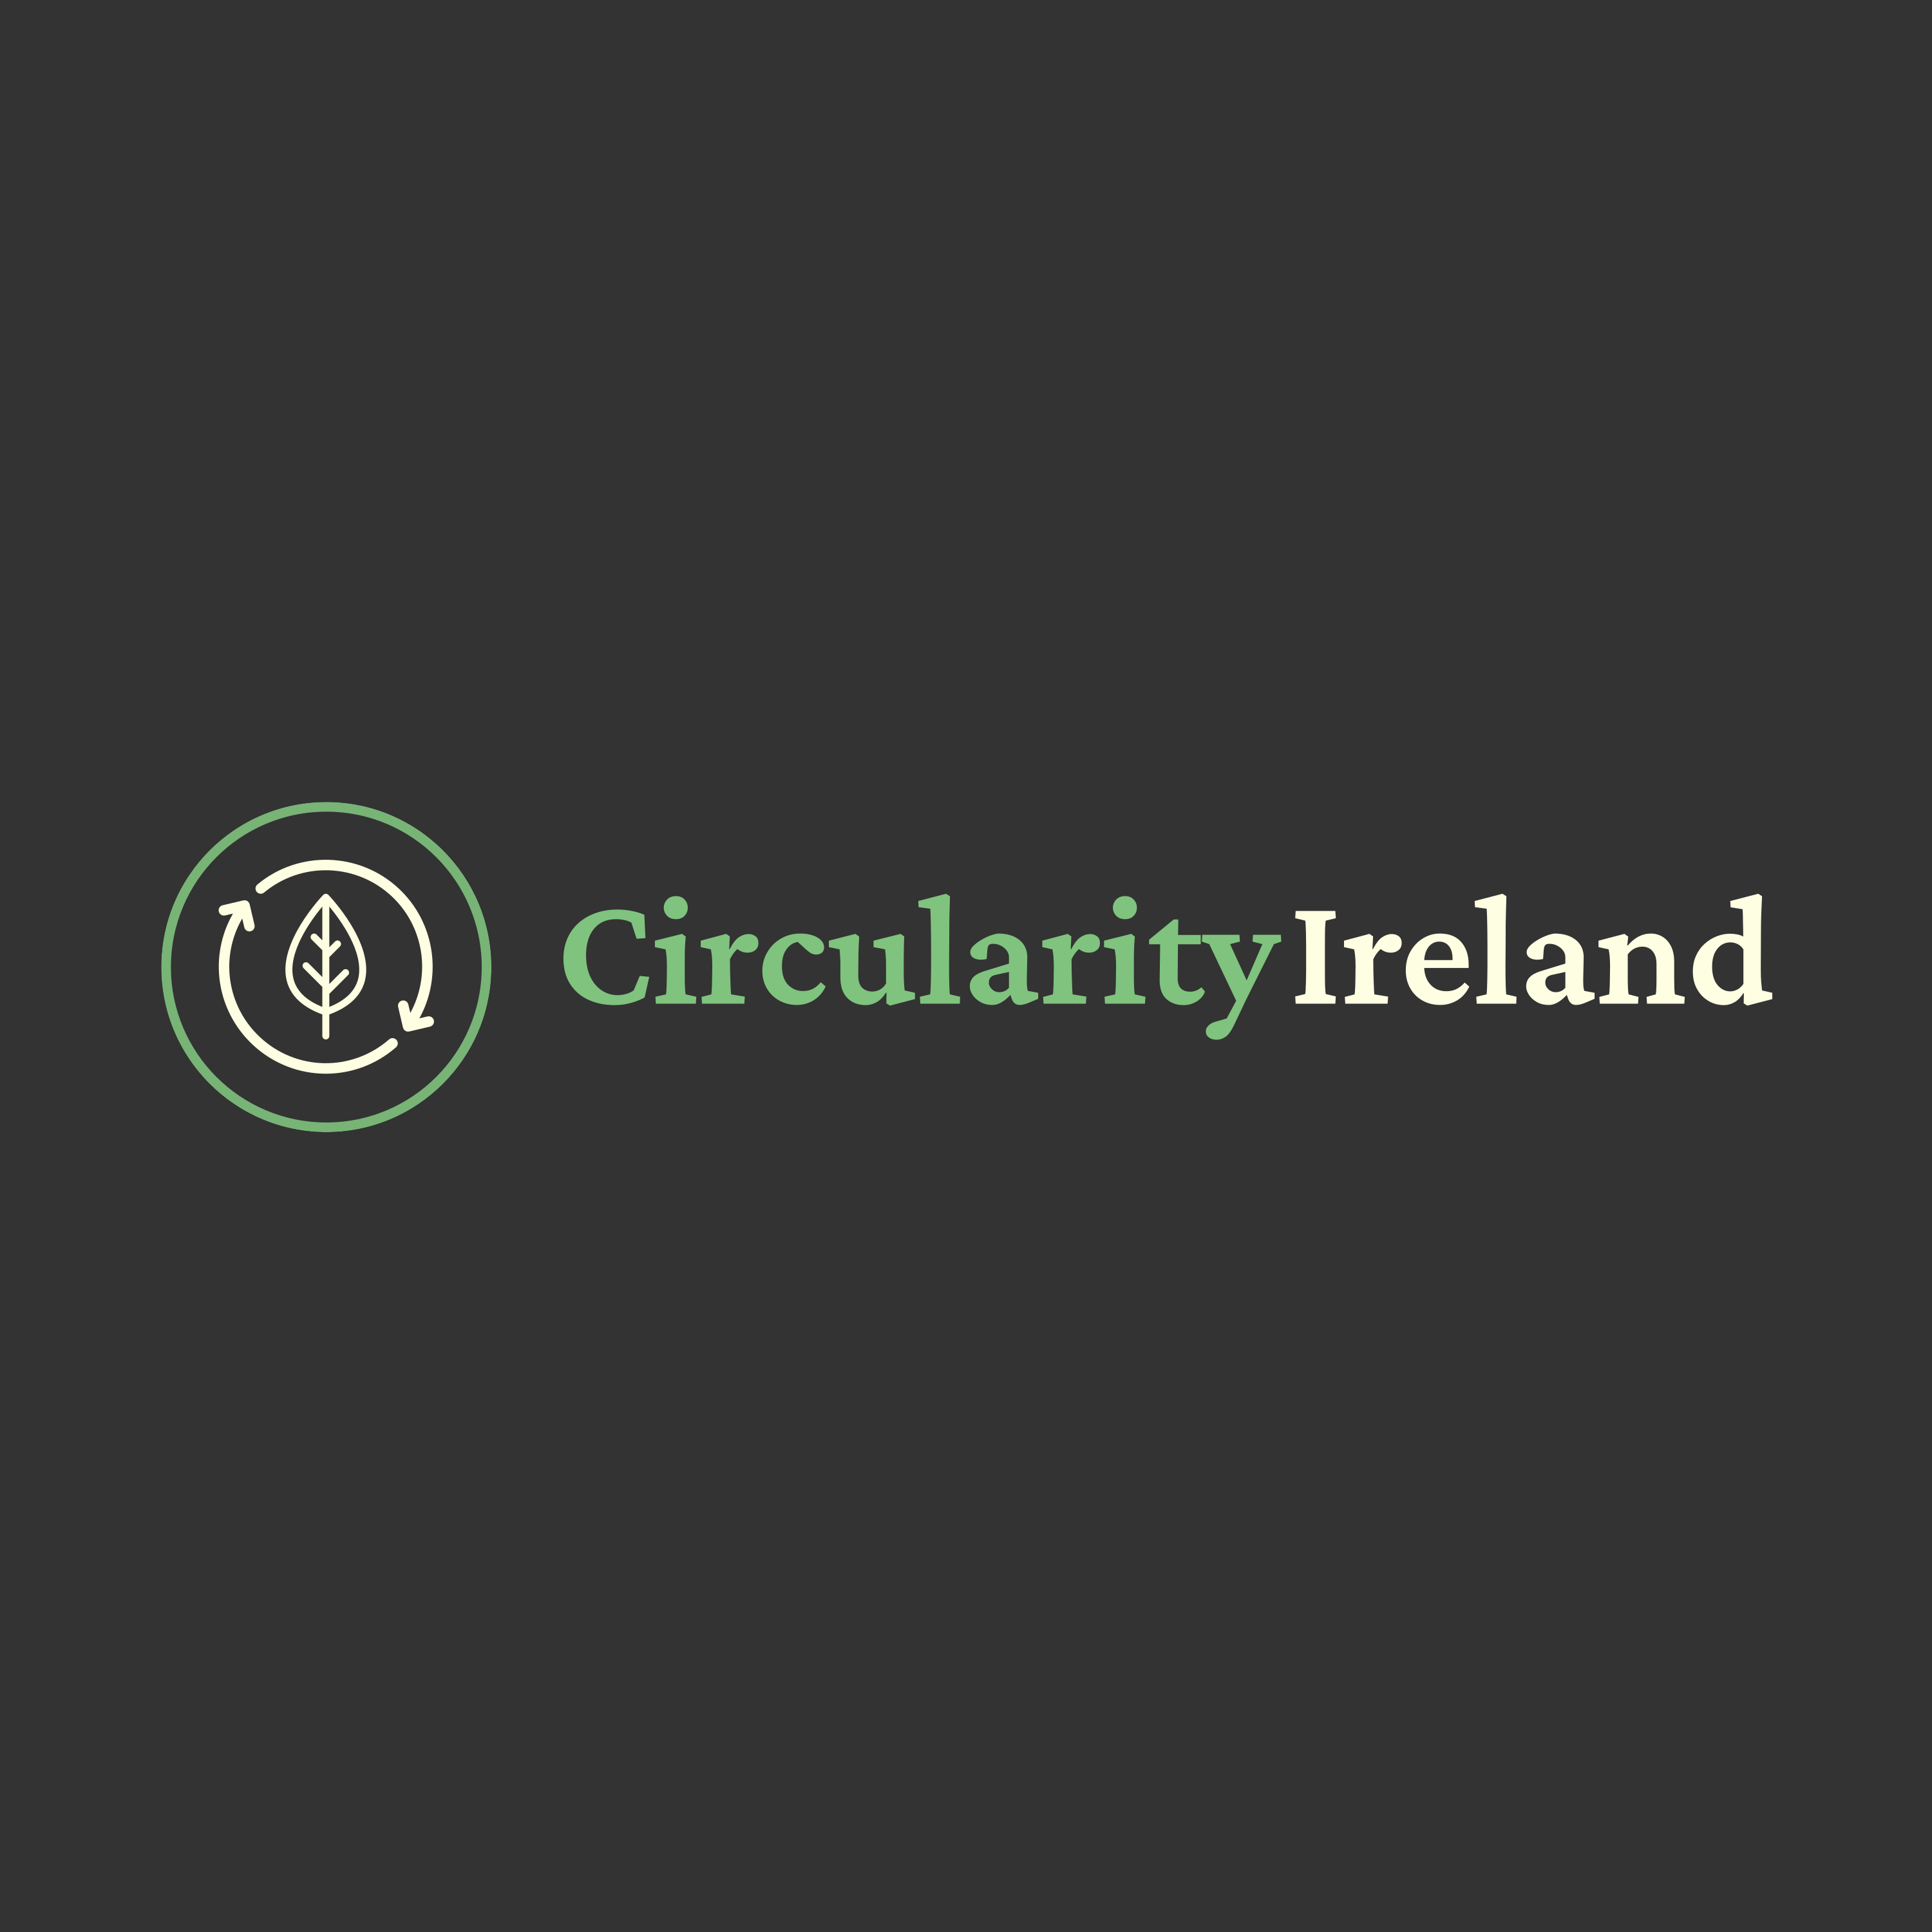 Circularity Ireland